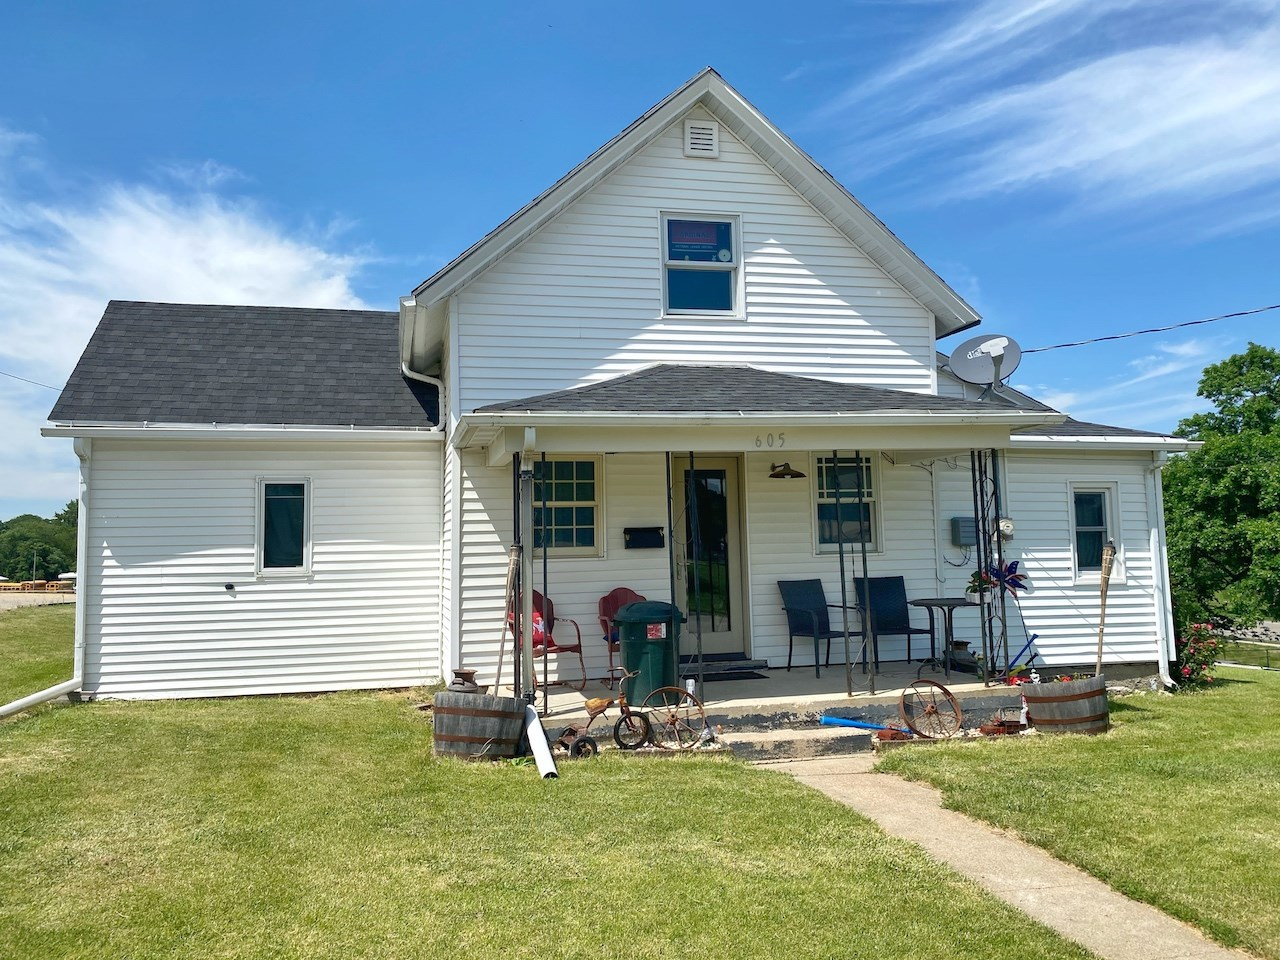 Home For Sale in Bedford Iowa Potential Investment Property